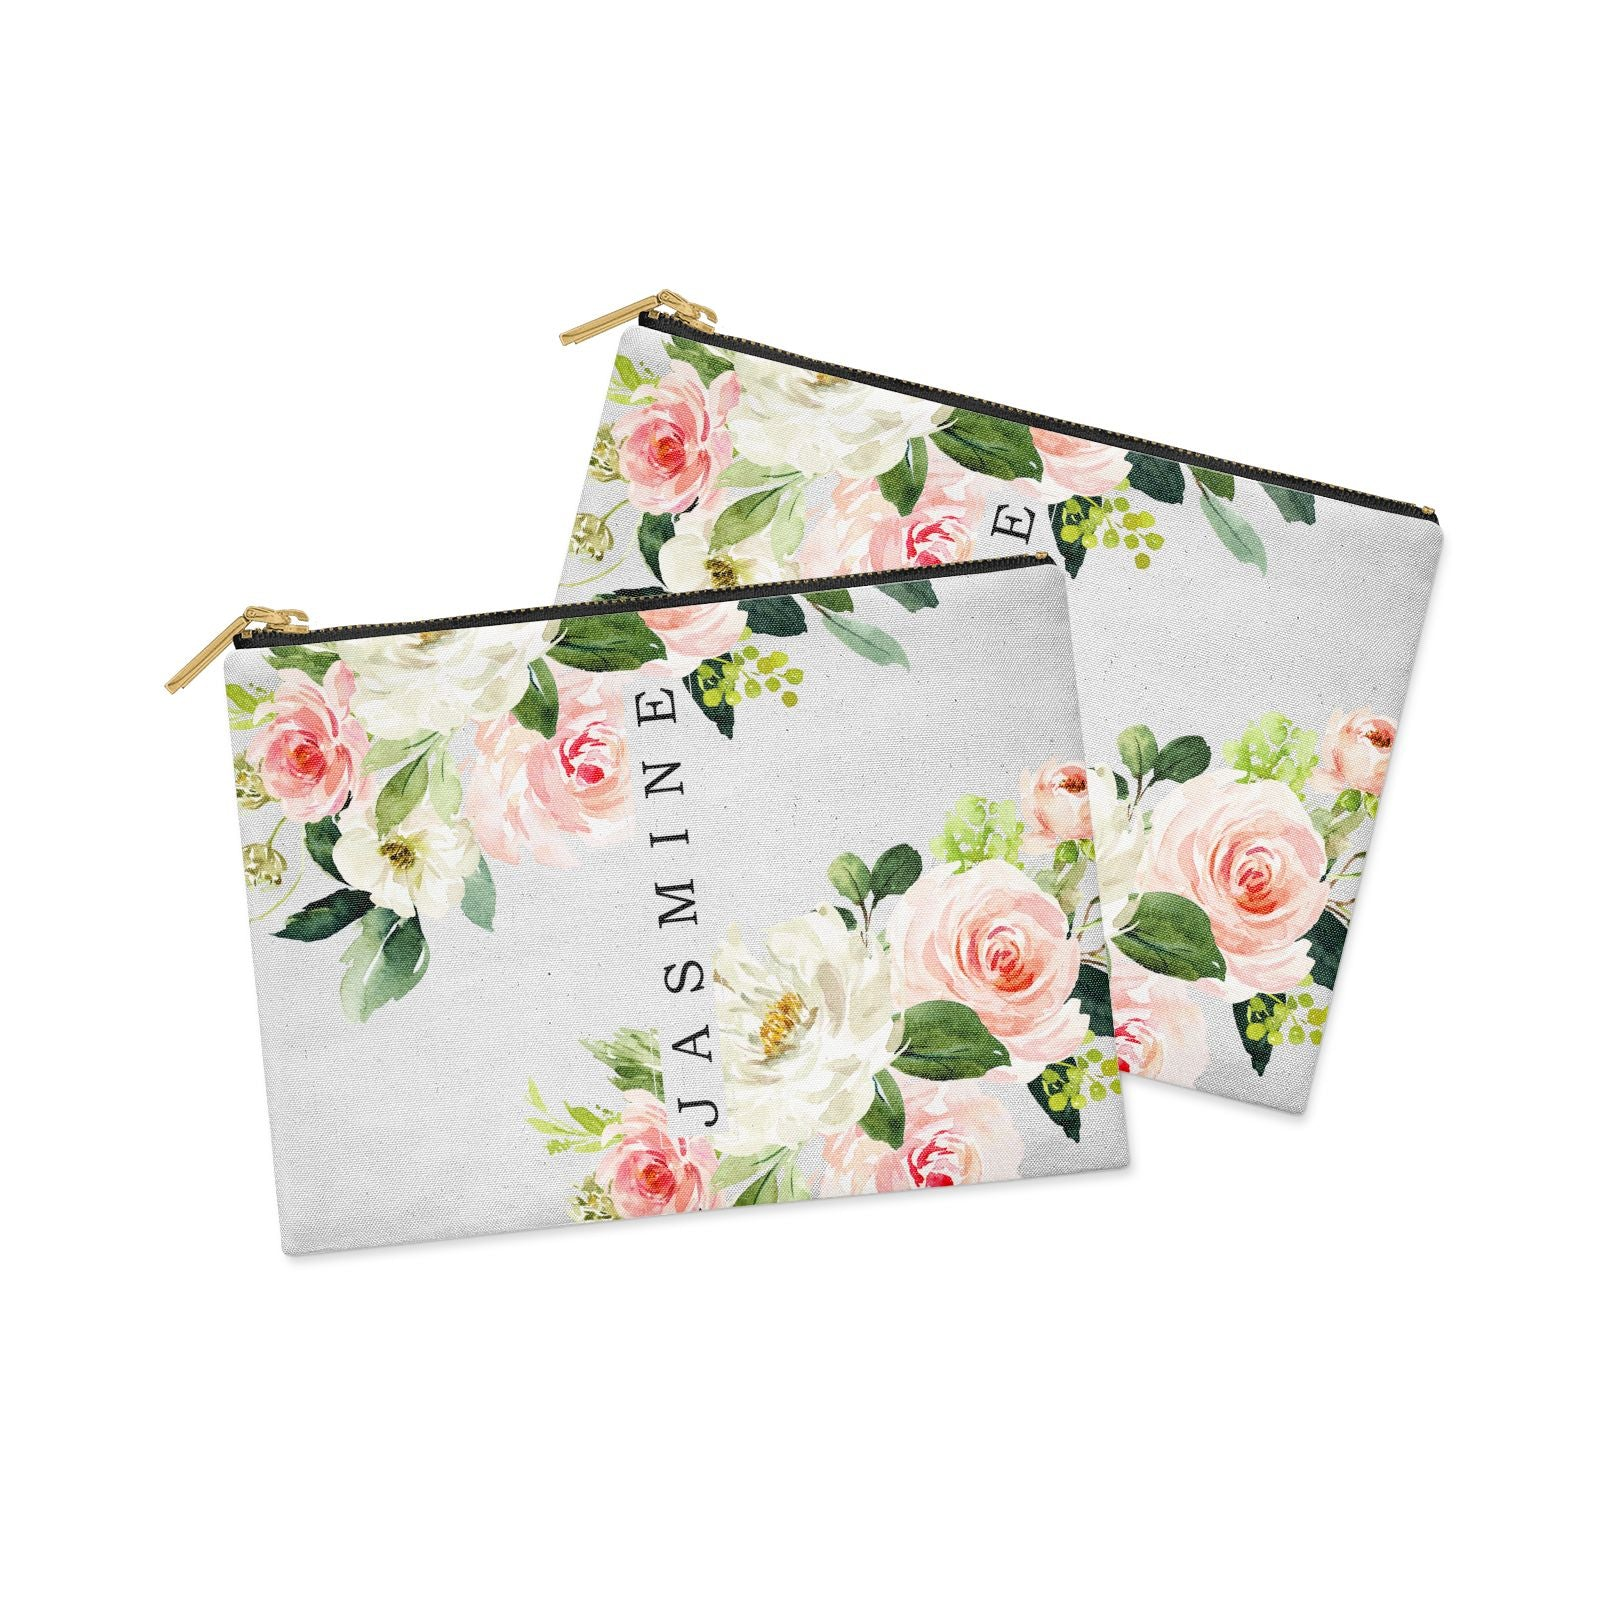 Personalised Floral Wreath with Name Clutch Bag Zipper Pouch Alternative View